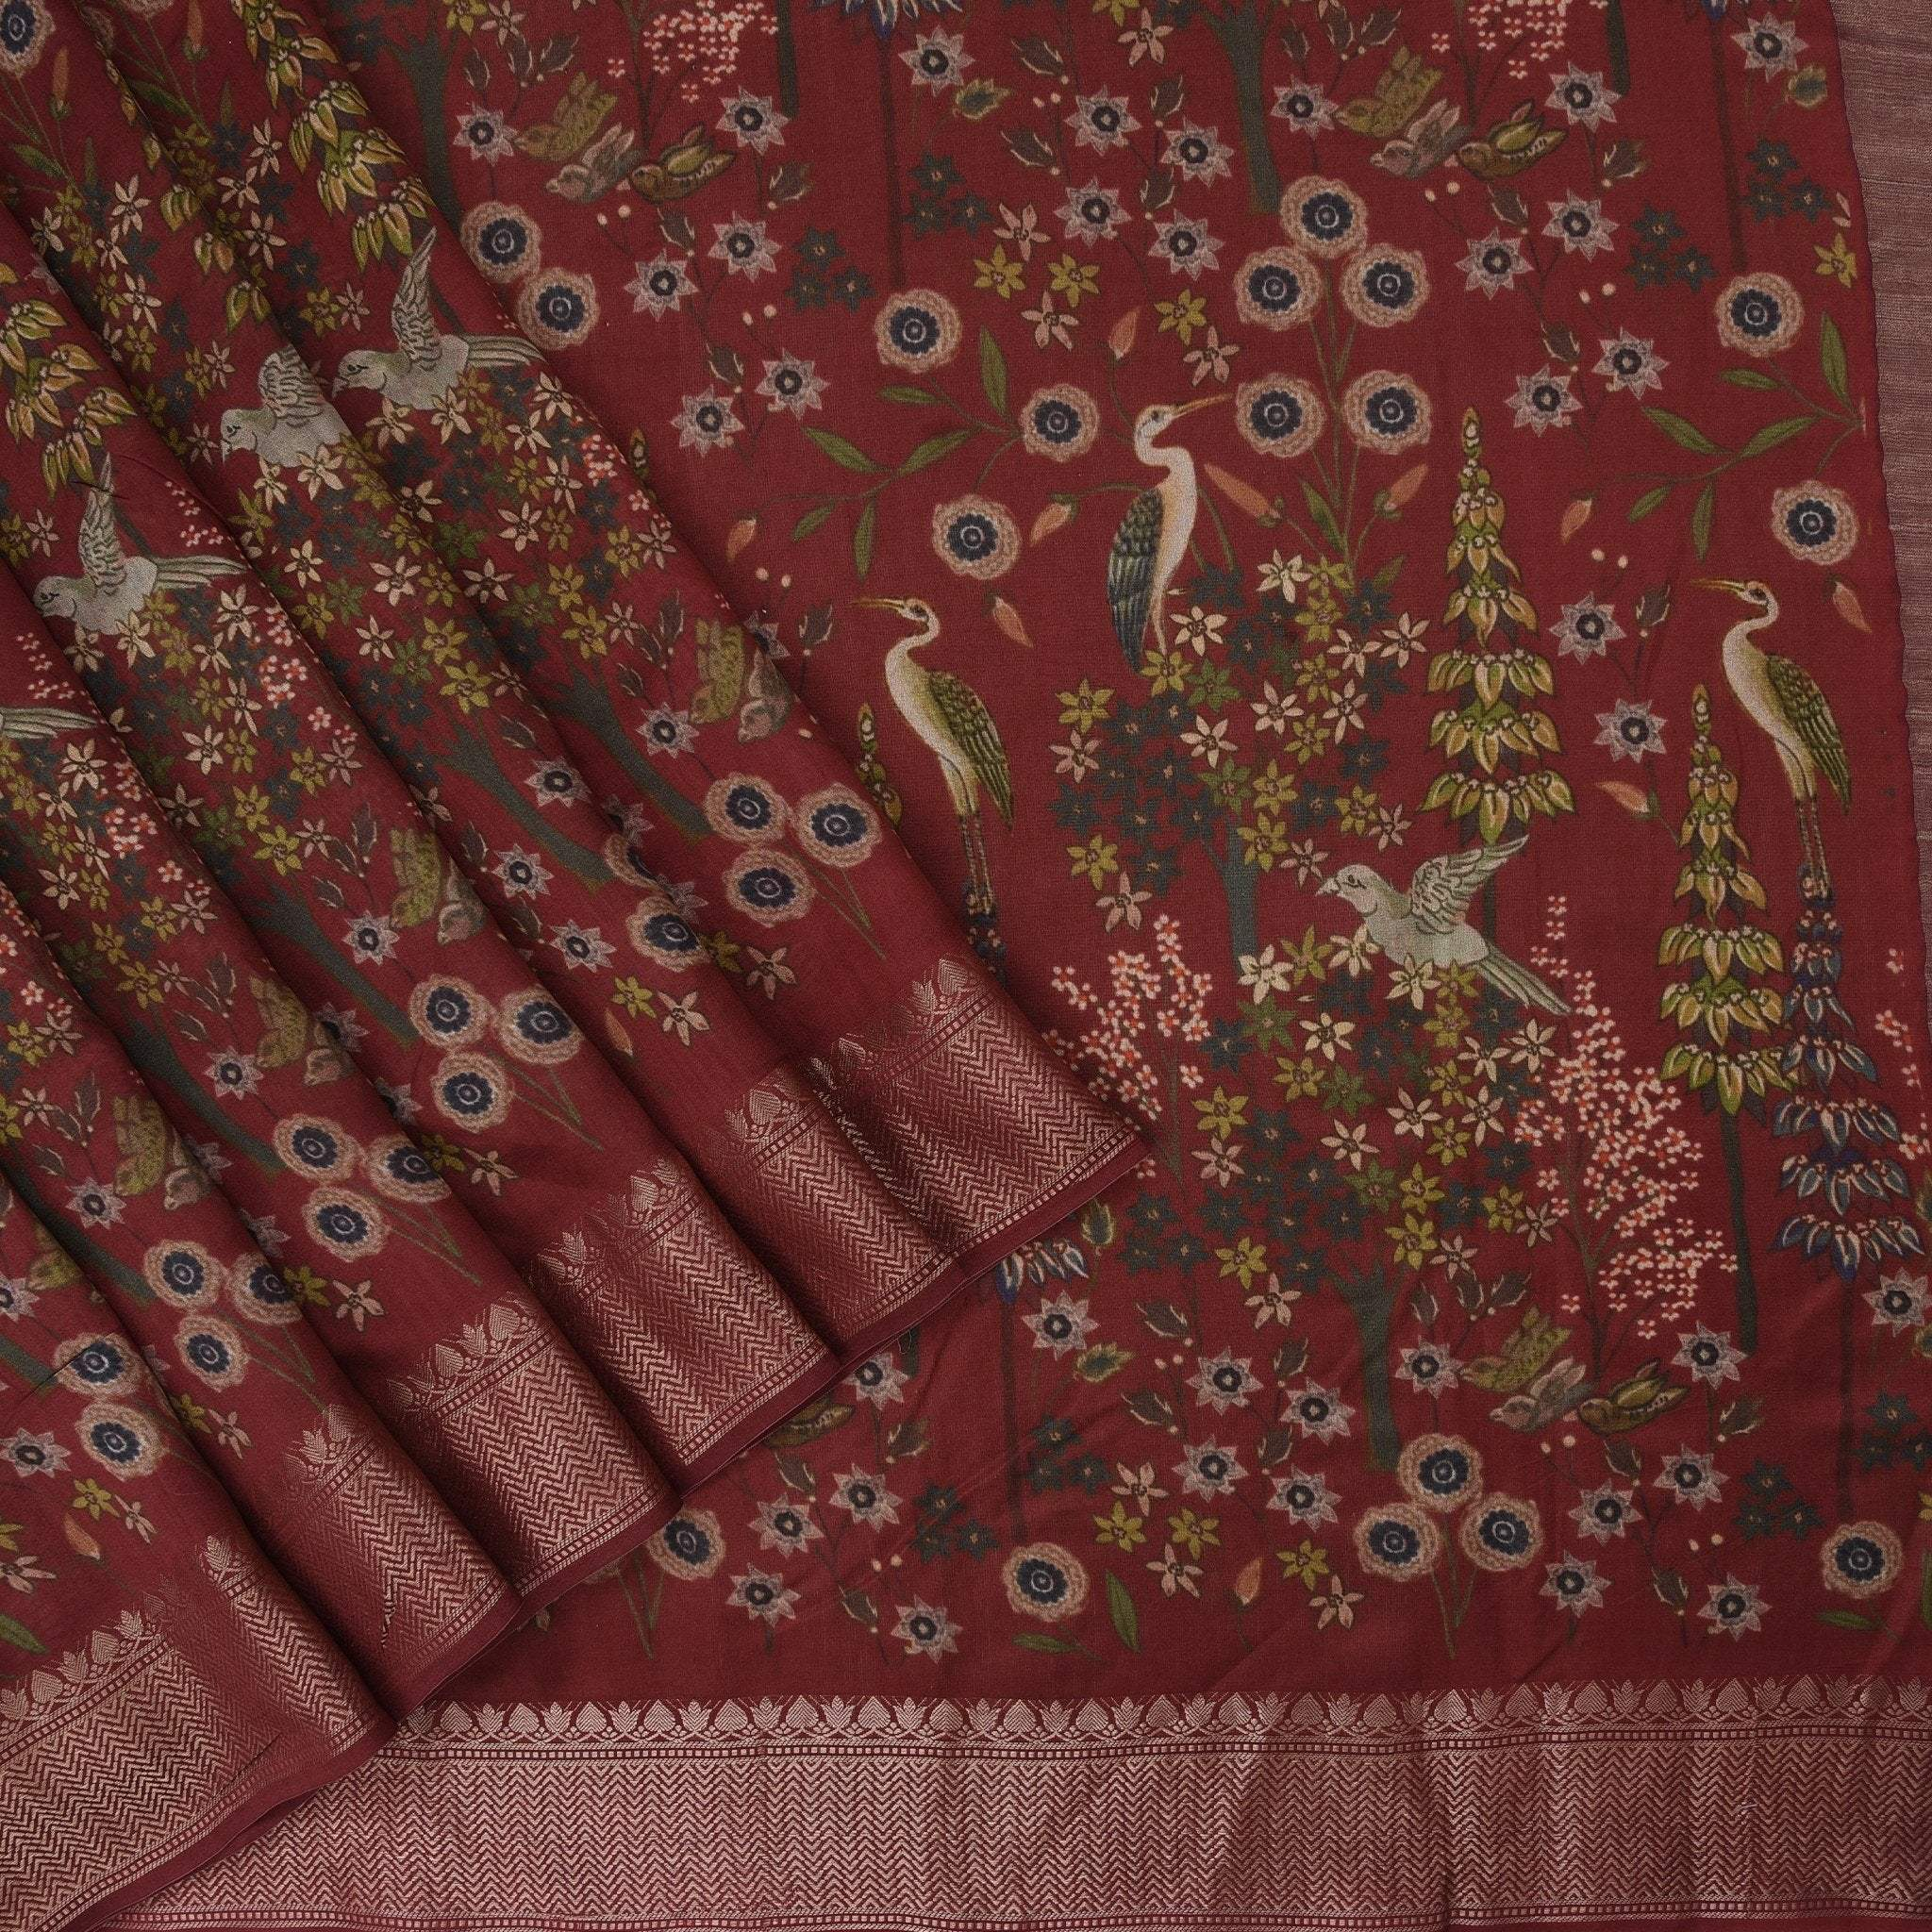 Brick-Red-Printed-Tussar-Handloom-Saree